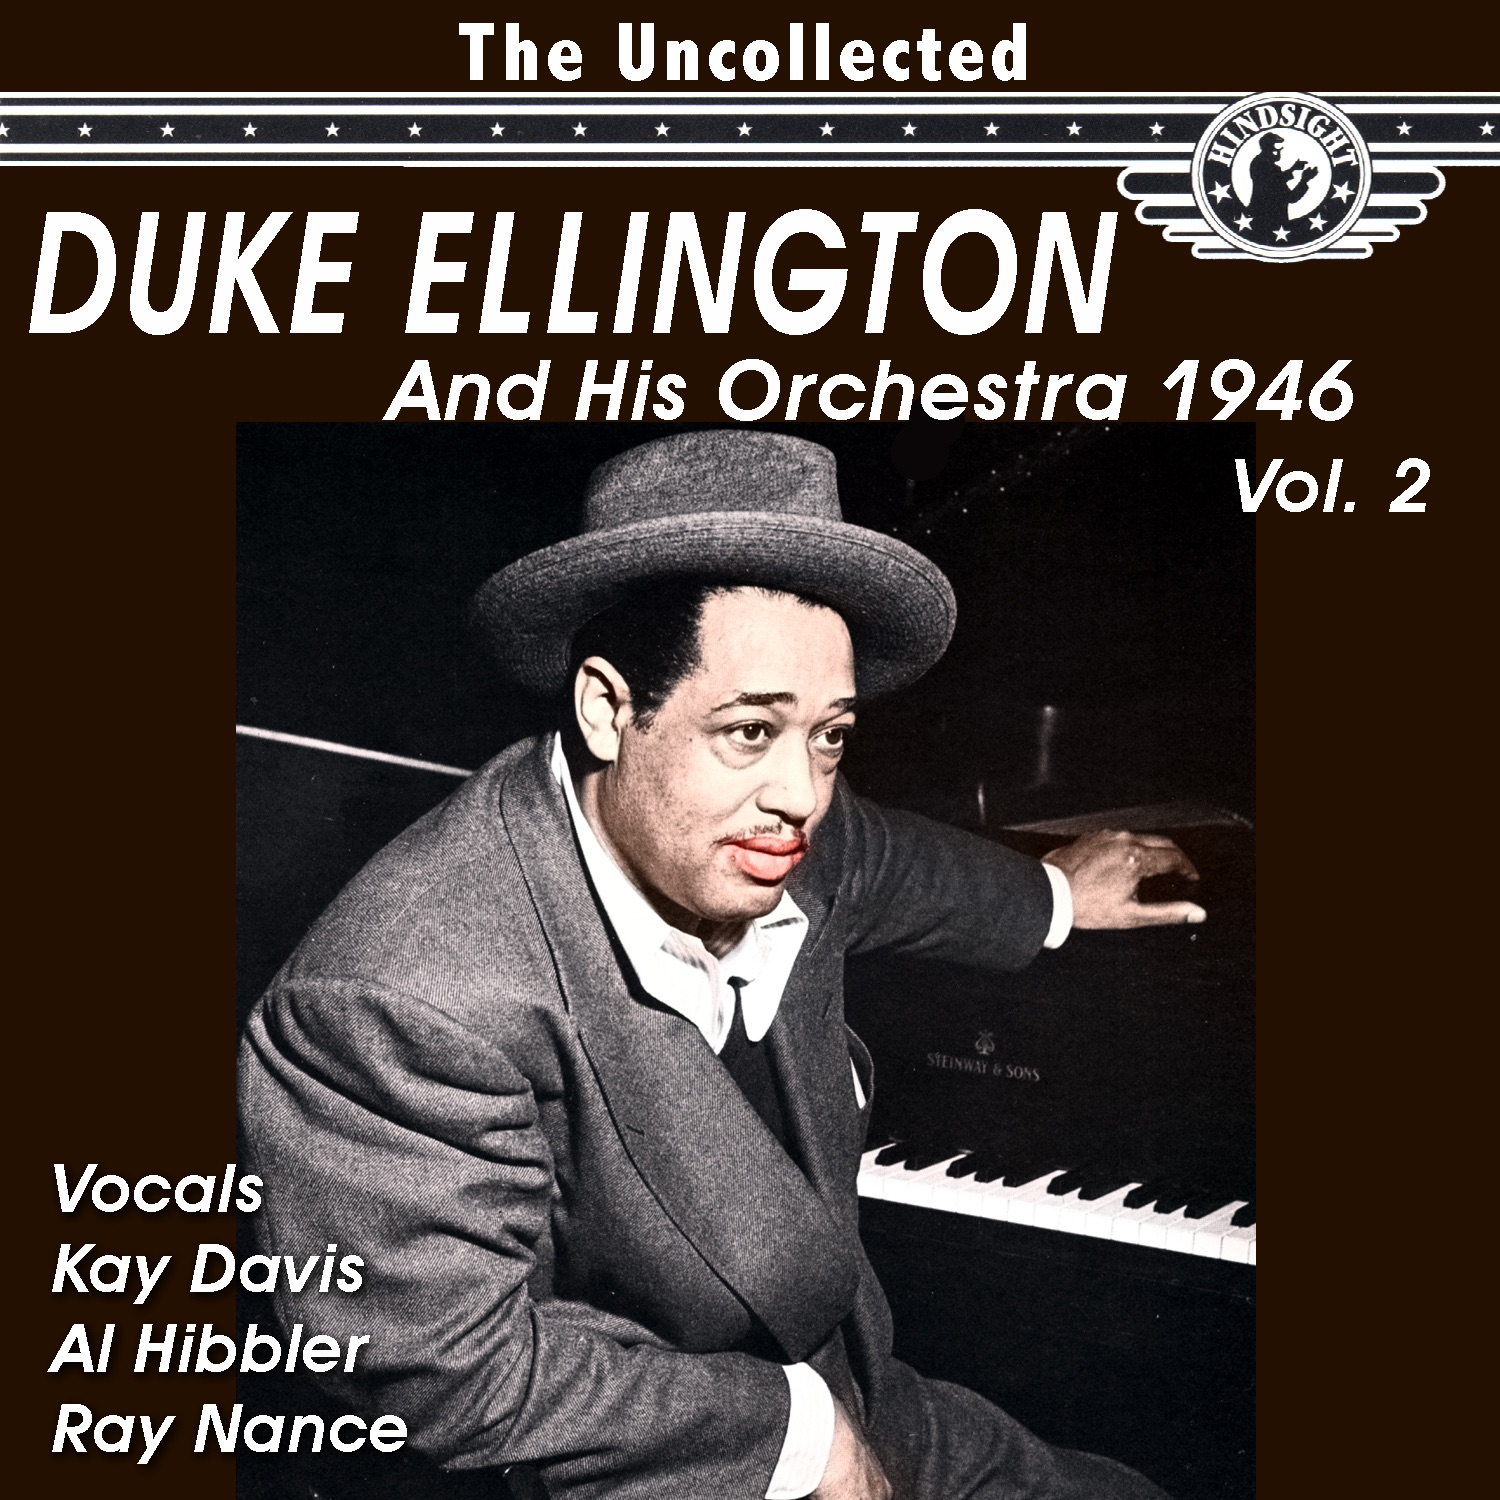 The Uncollected Duke Ellington and His Orchestra 1946, Vol. 2 (Digitally Remastered)